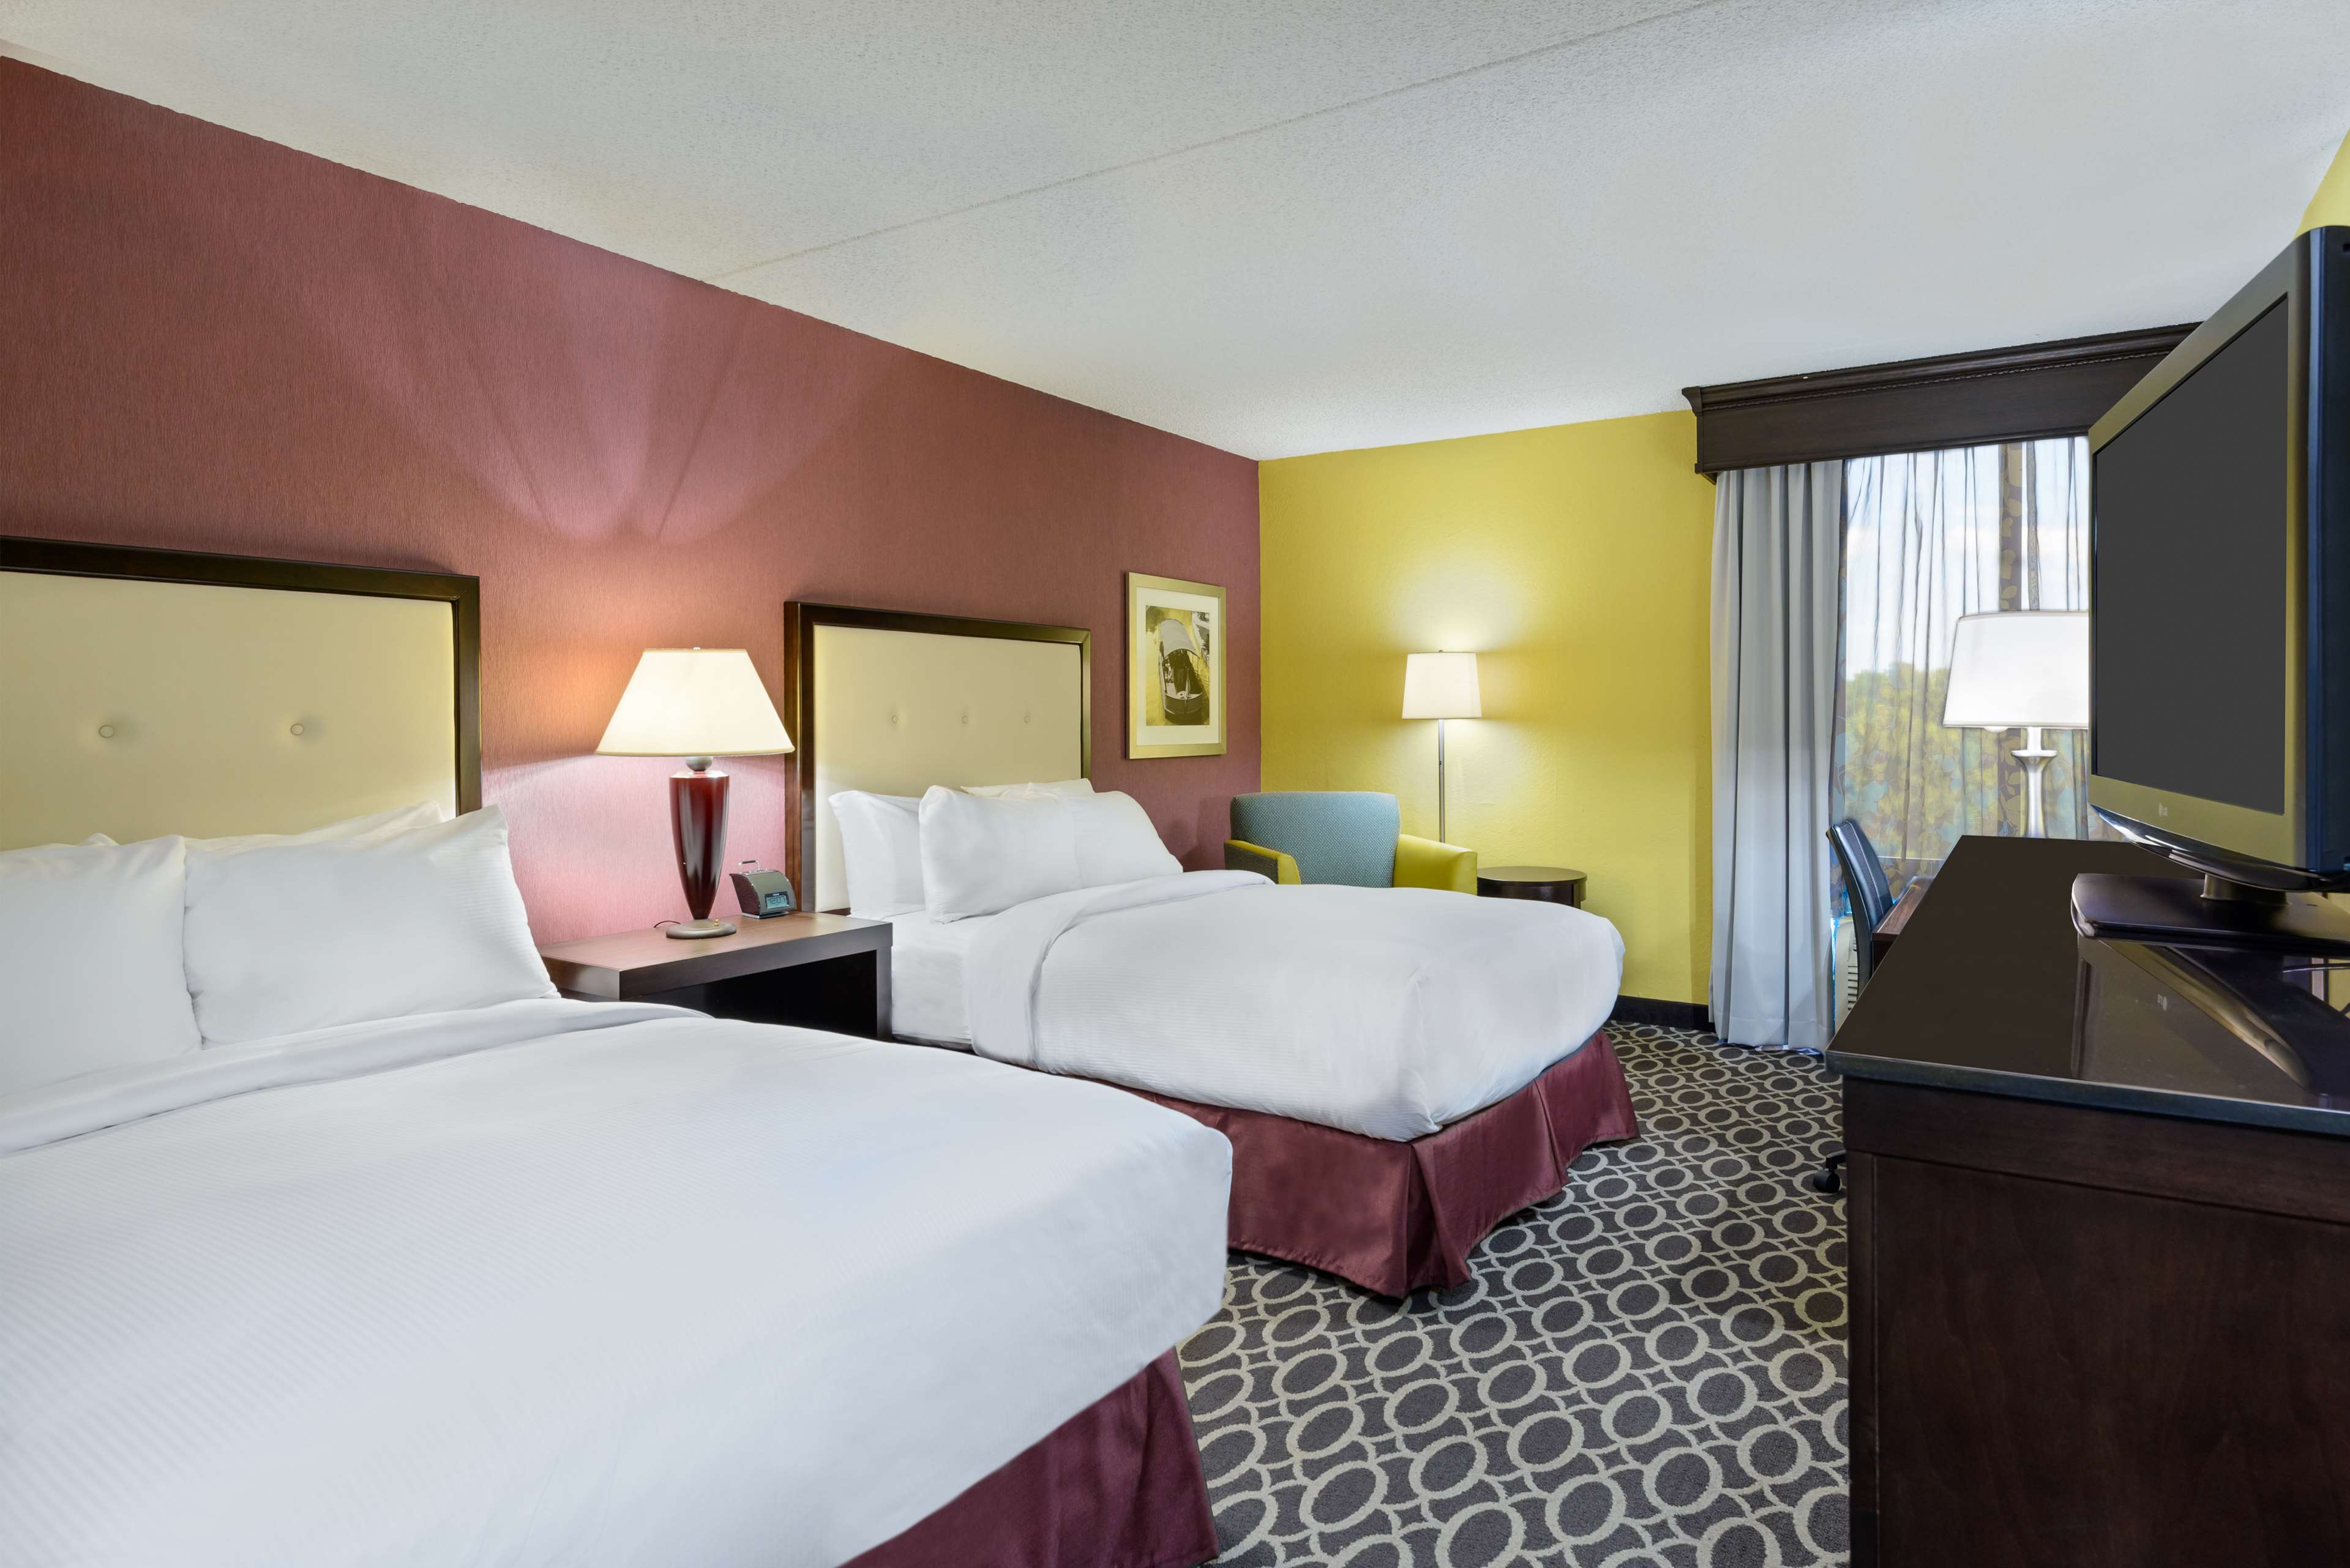 DoubleTree by Hilton Hotel Richmond - Midlothian image 9